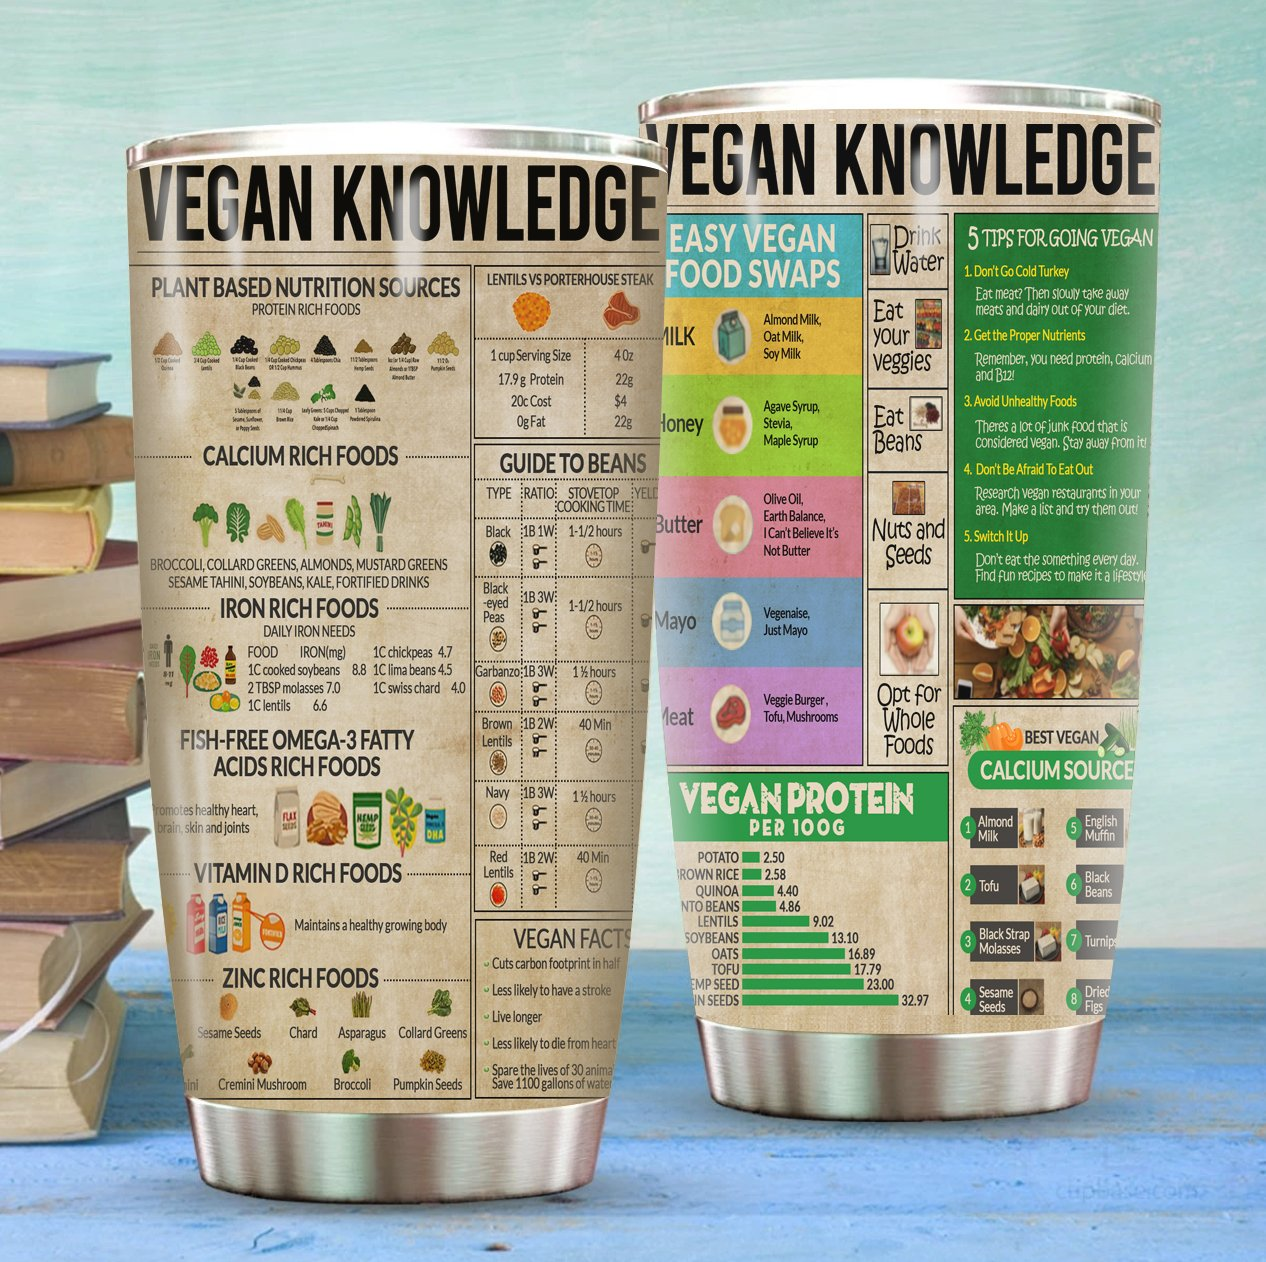 Vegan Knowledge Stainless Steel Tumbler